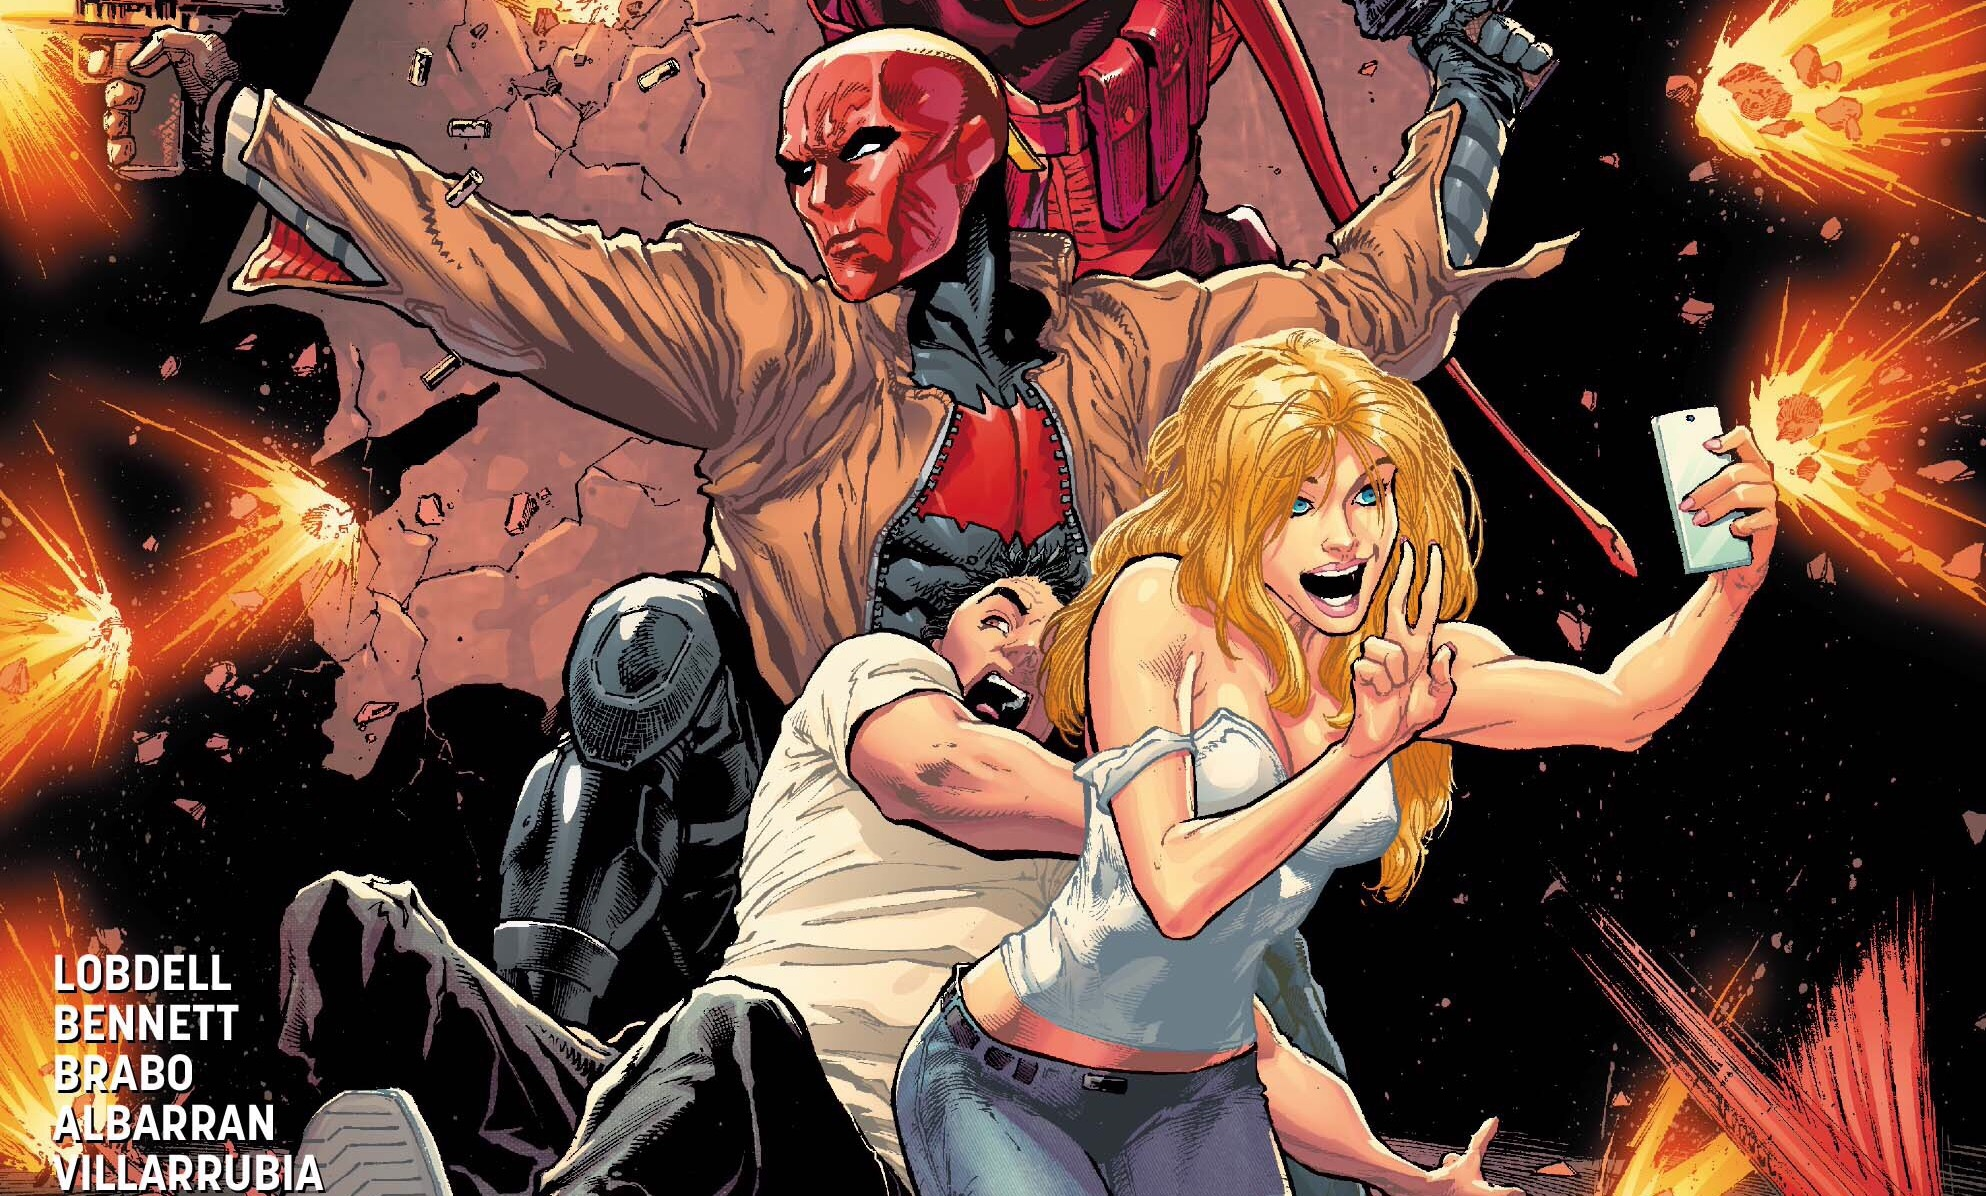 [EXCLUSIVE] DC Preview: Red Hood/Arsenal #13